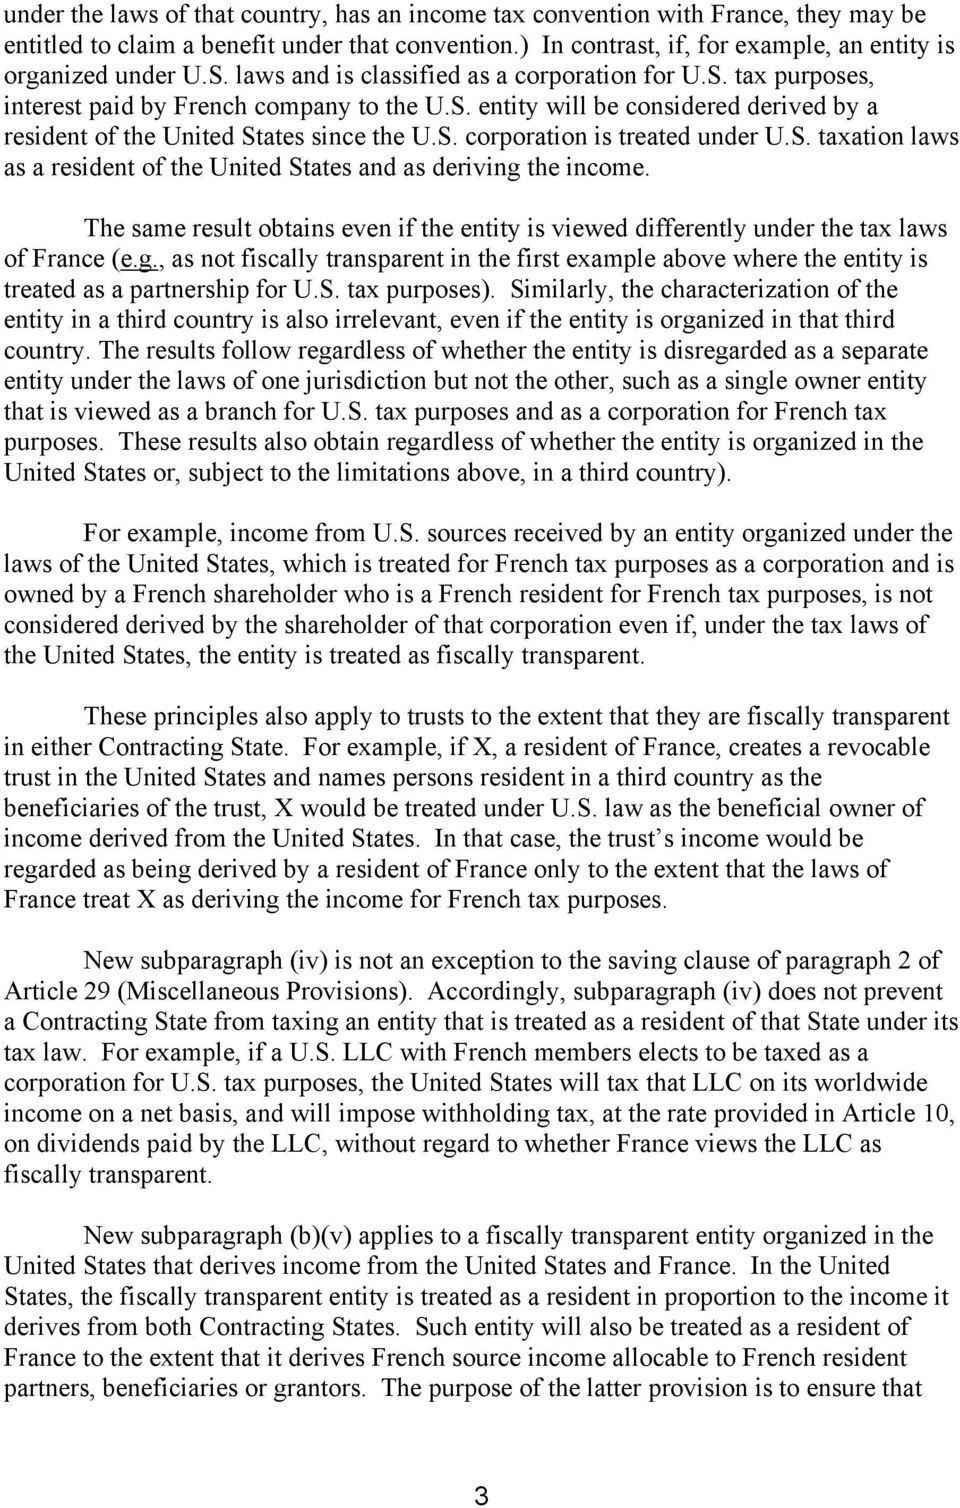 S. taxation laws as a resident of the United States and as deriving the income. The same result obtains even if the entity is viewed differently under the tax laws of France (e.g., as not fiscally transparent in the first example above where the entity is treated as a partnership for U.